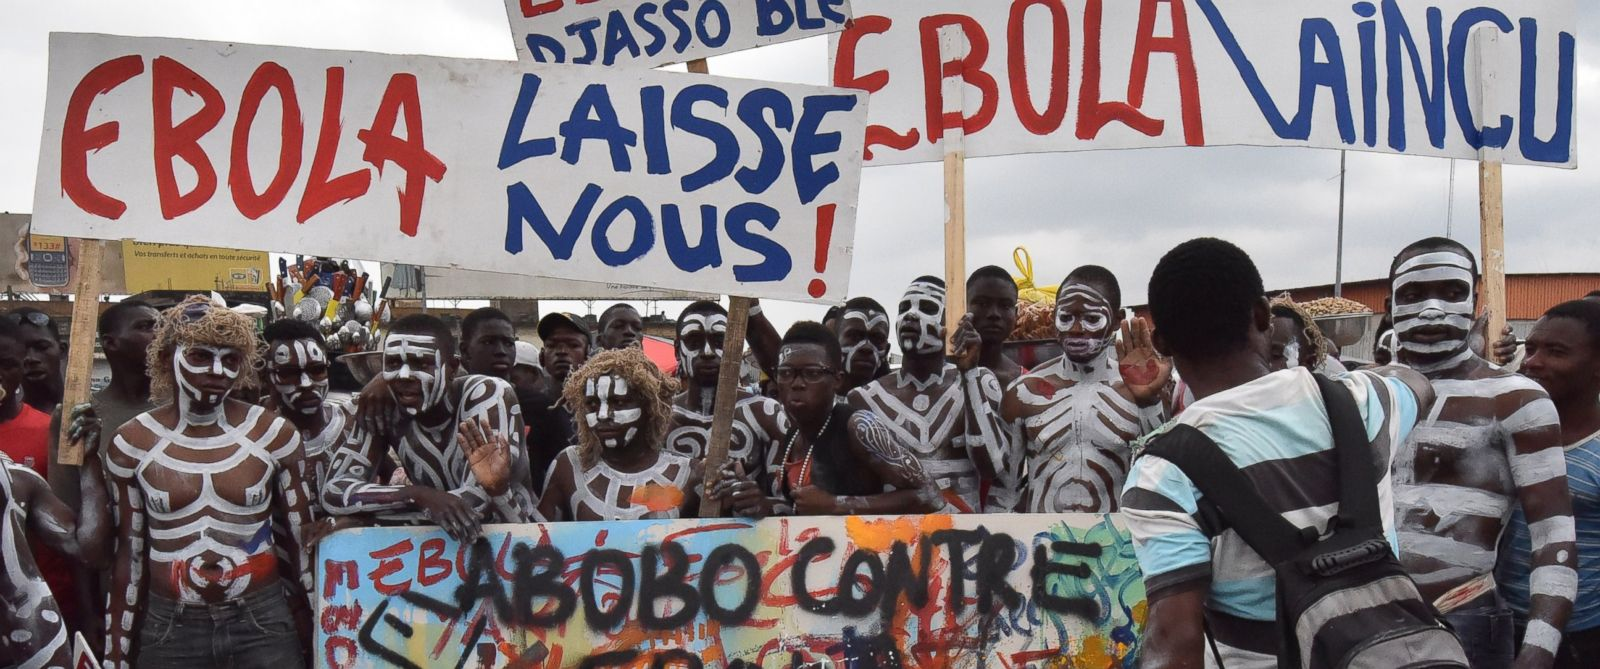 PHOTO: Visual artists gather during a rally against the Ebola virus on Sept. 4, 2014 in Abidjan, Ivory Coast.